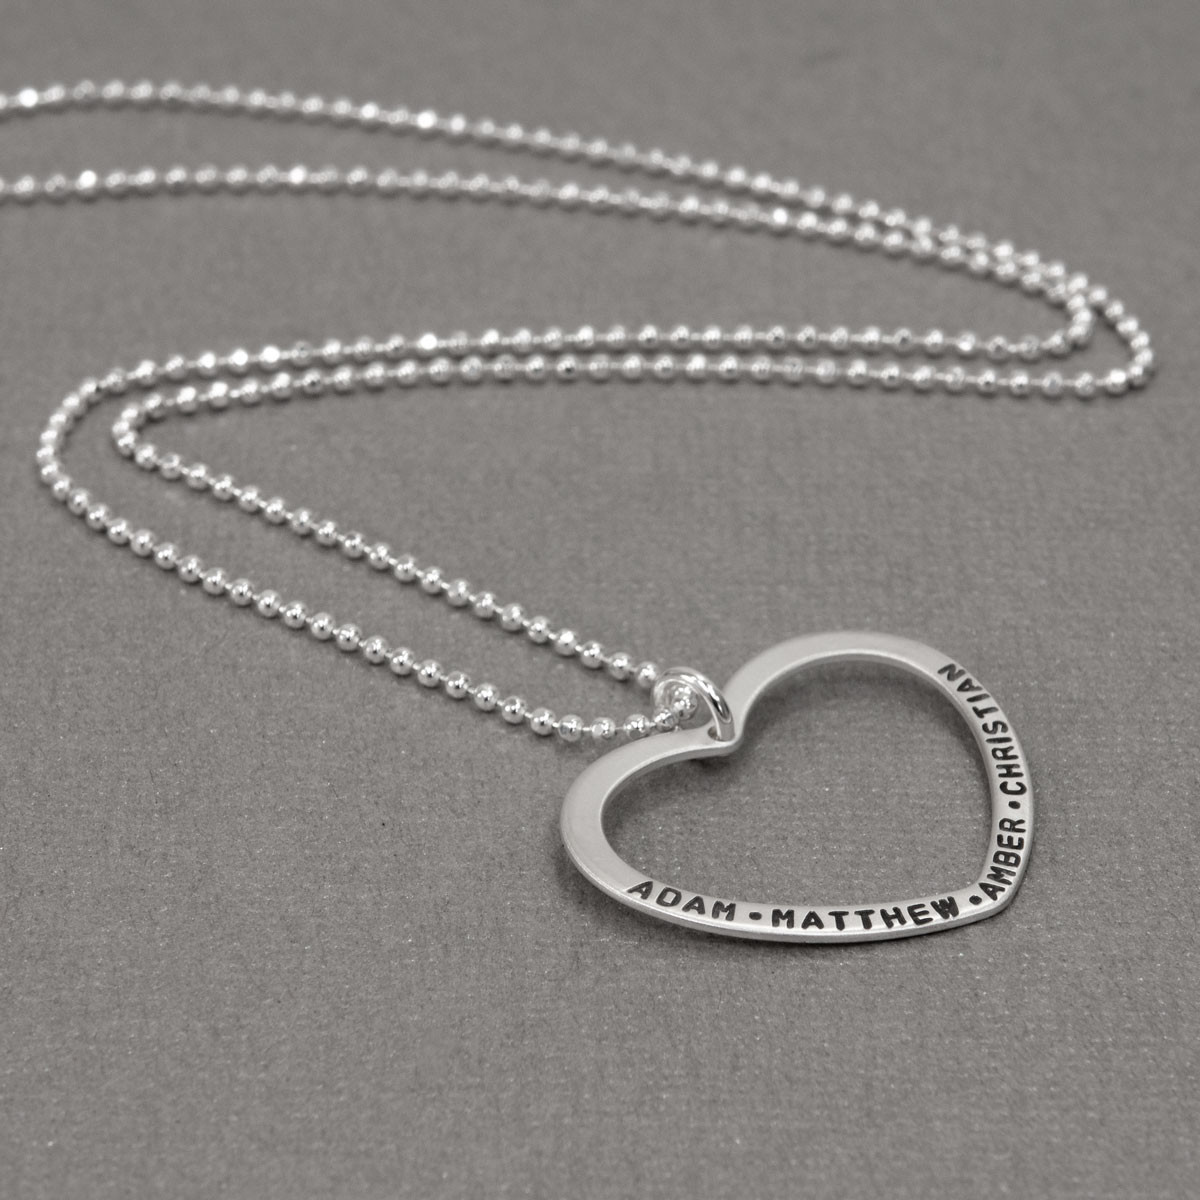 Open Heart Charm Silver Necklace, shown from the side